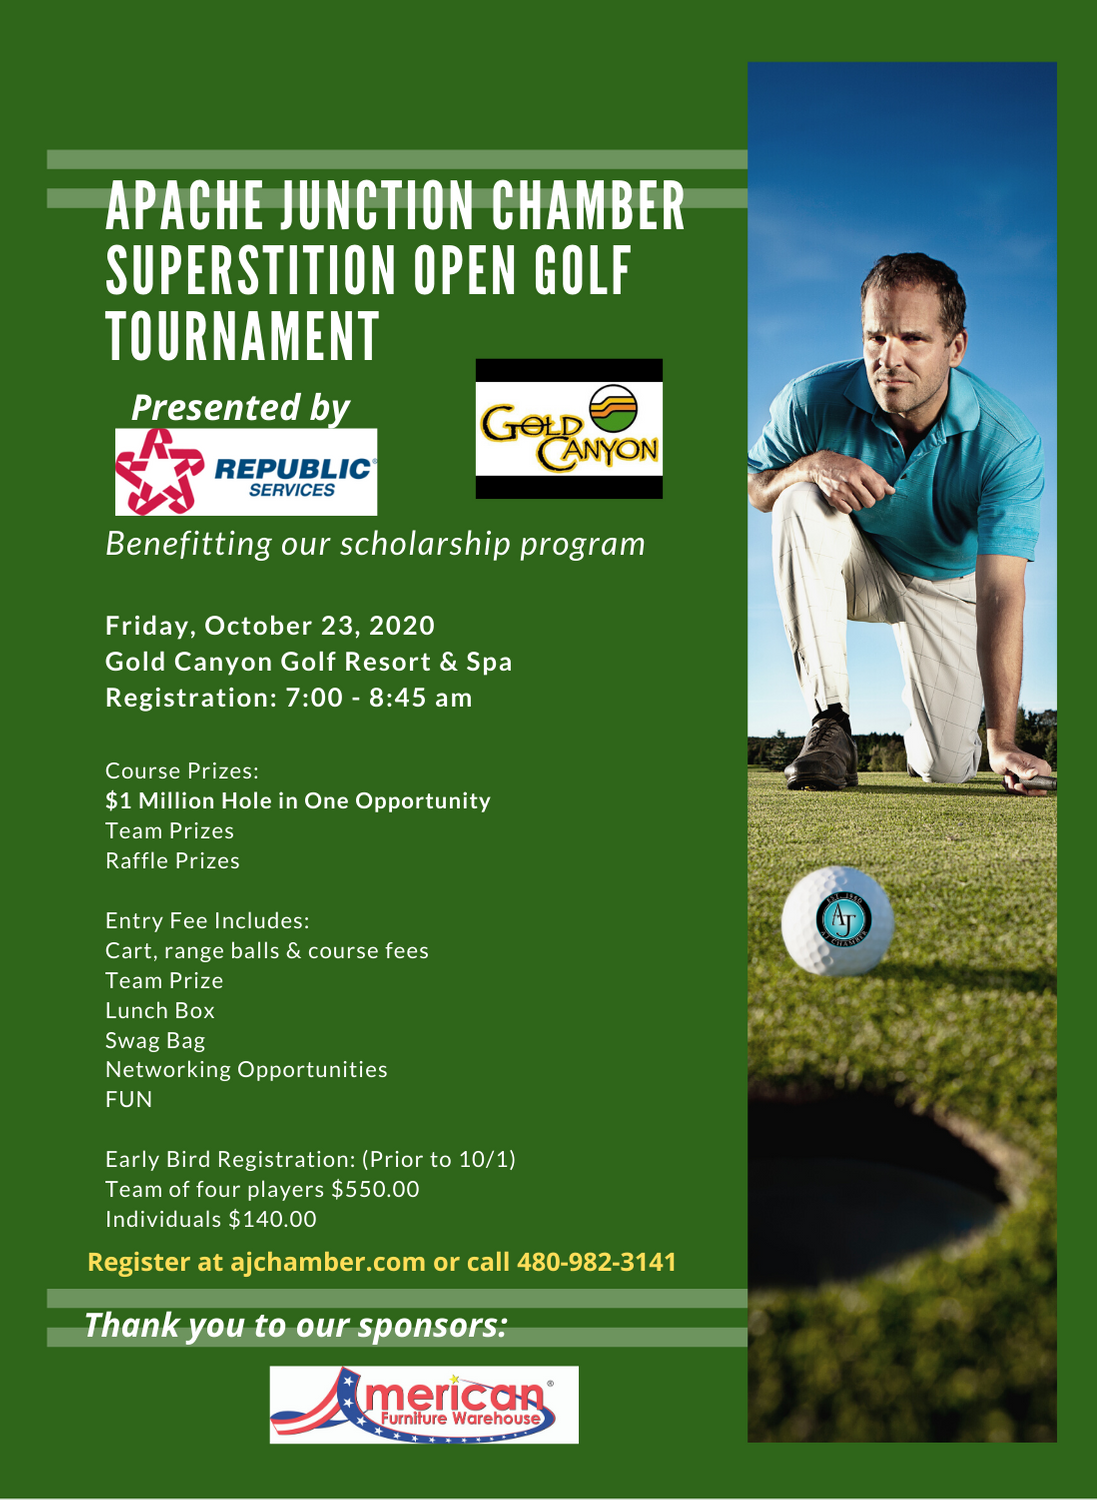 Superstition Open Golf Tournament Flyer